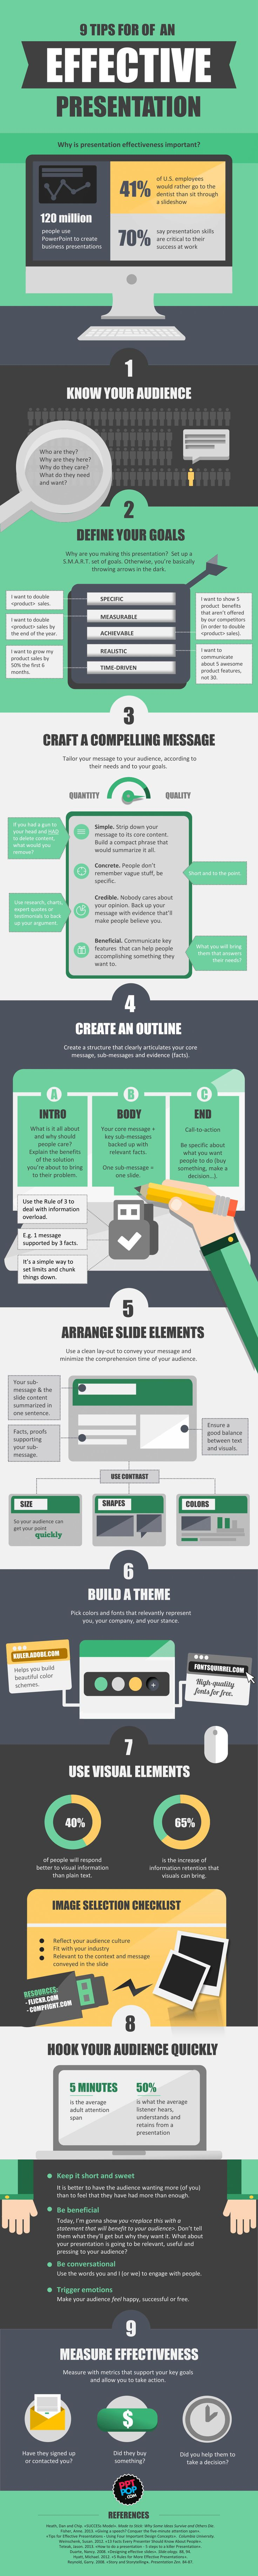 Infographic Nine Tips For An Effective Presentation